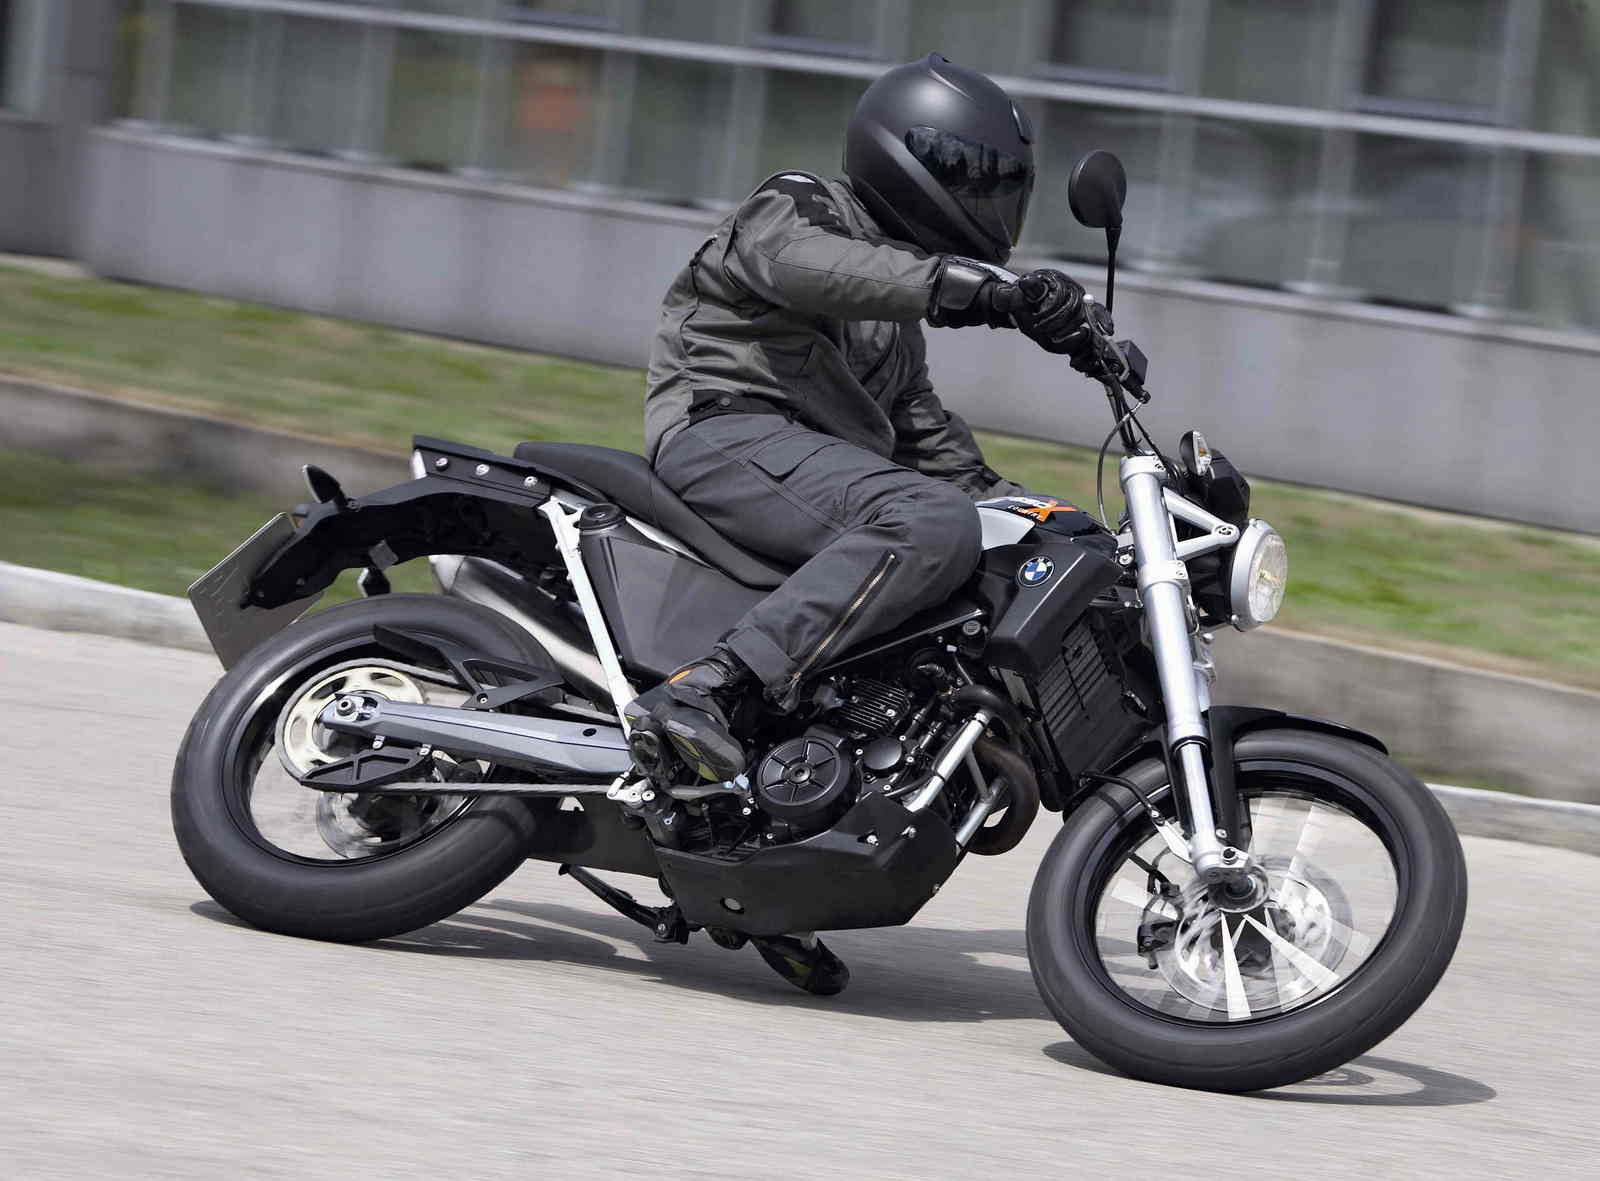 2007 bmw g 650 xcountry picture 113268 motorcycle. Black Bedroom Furniture Sets. Home Design Ideas